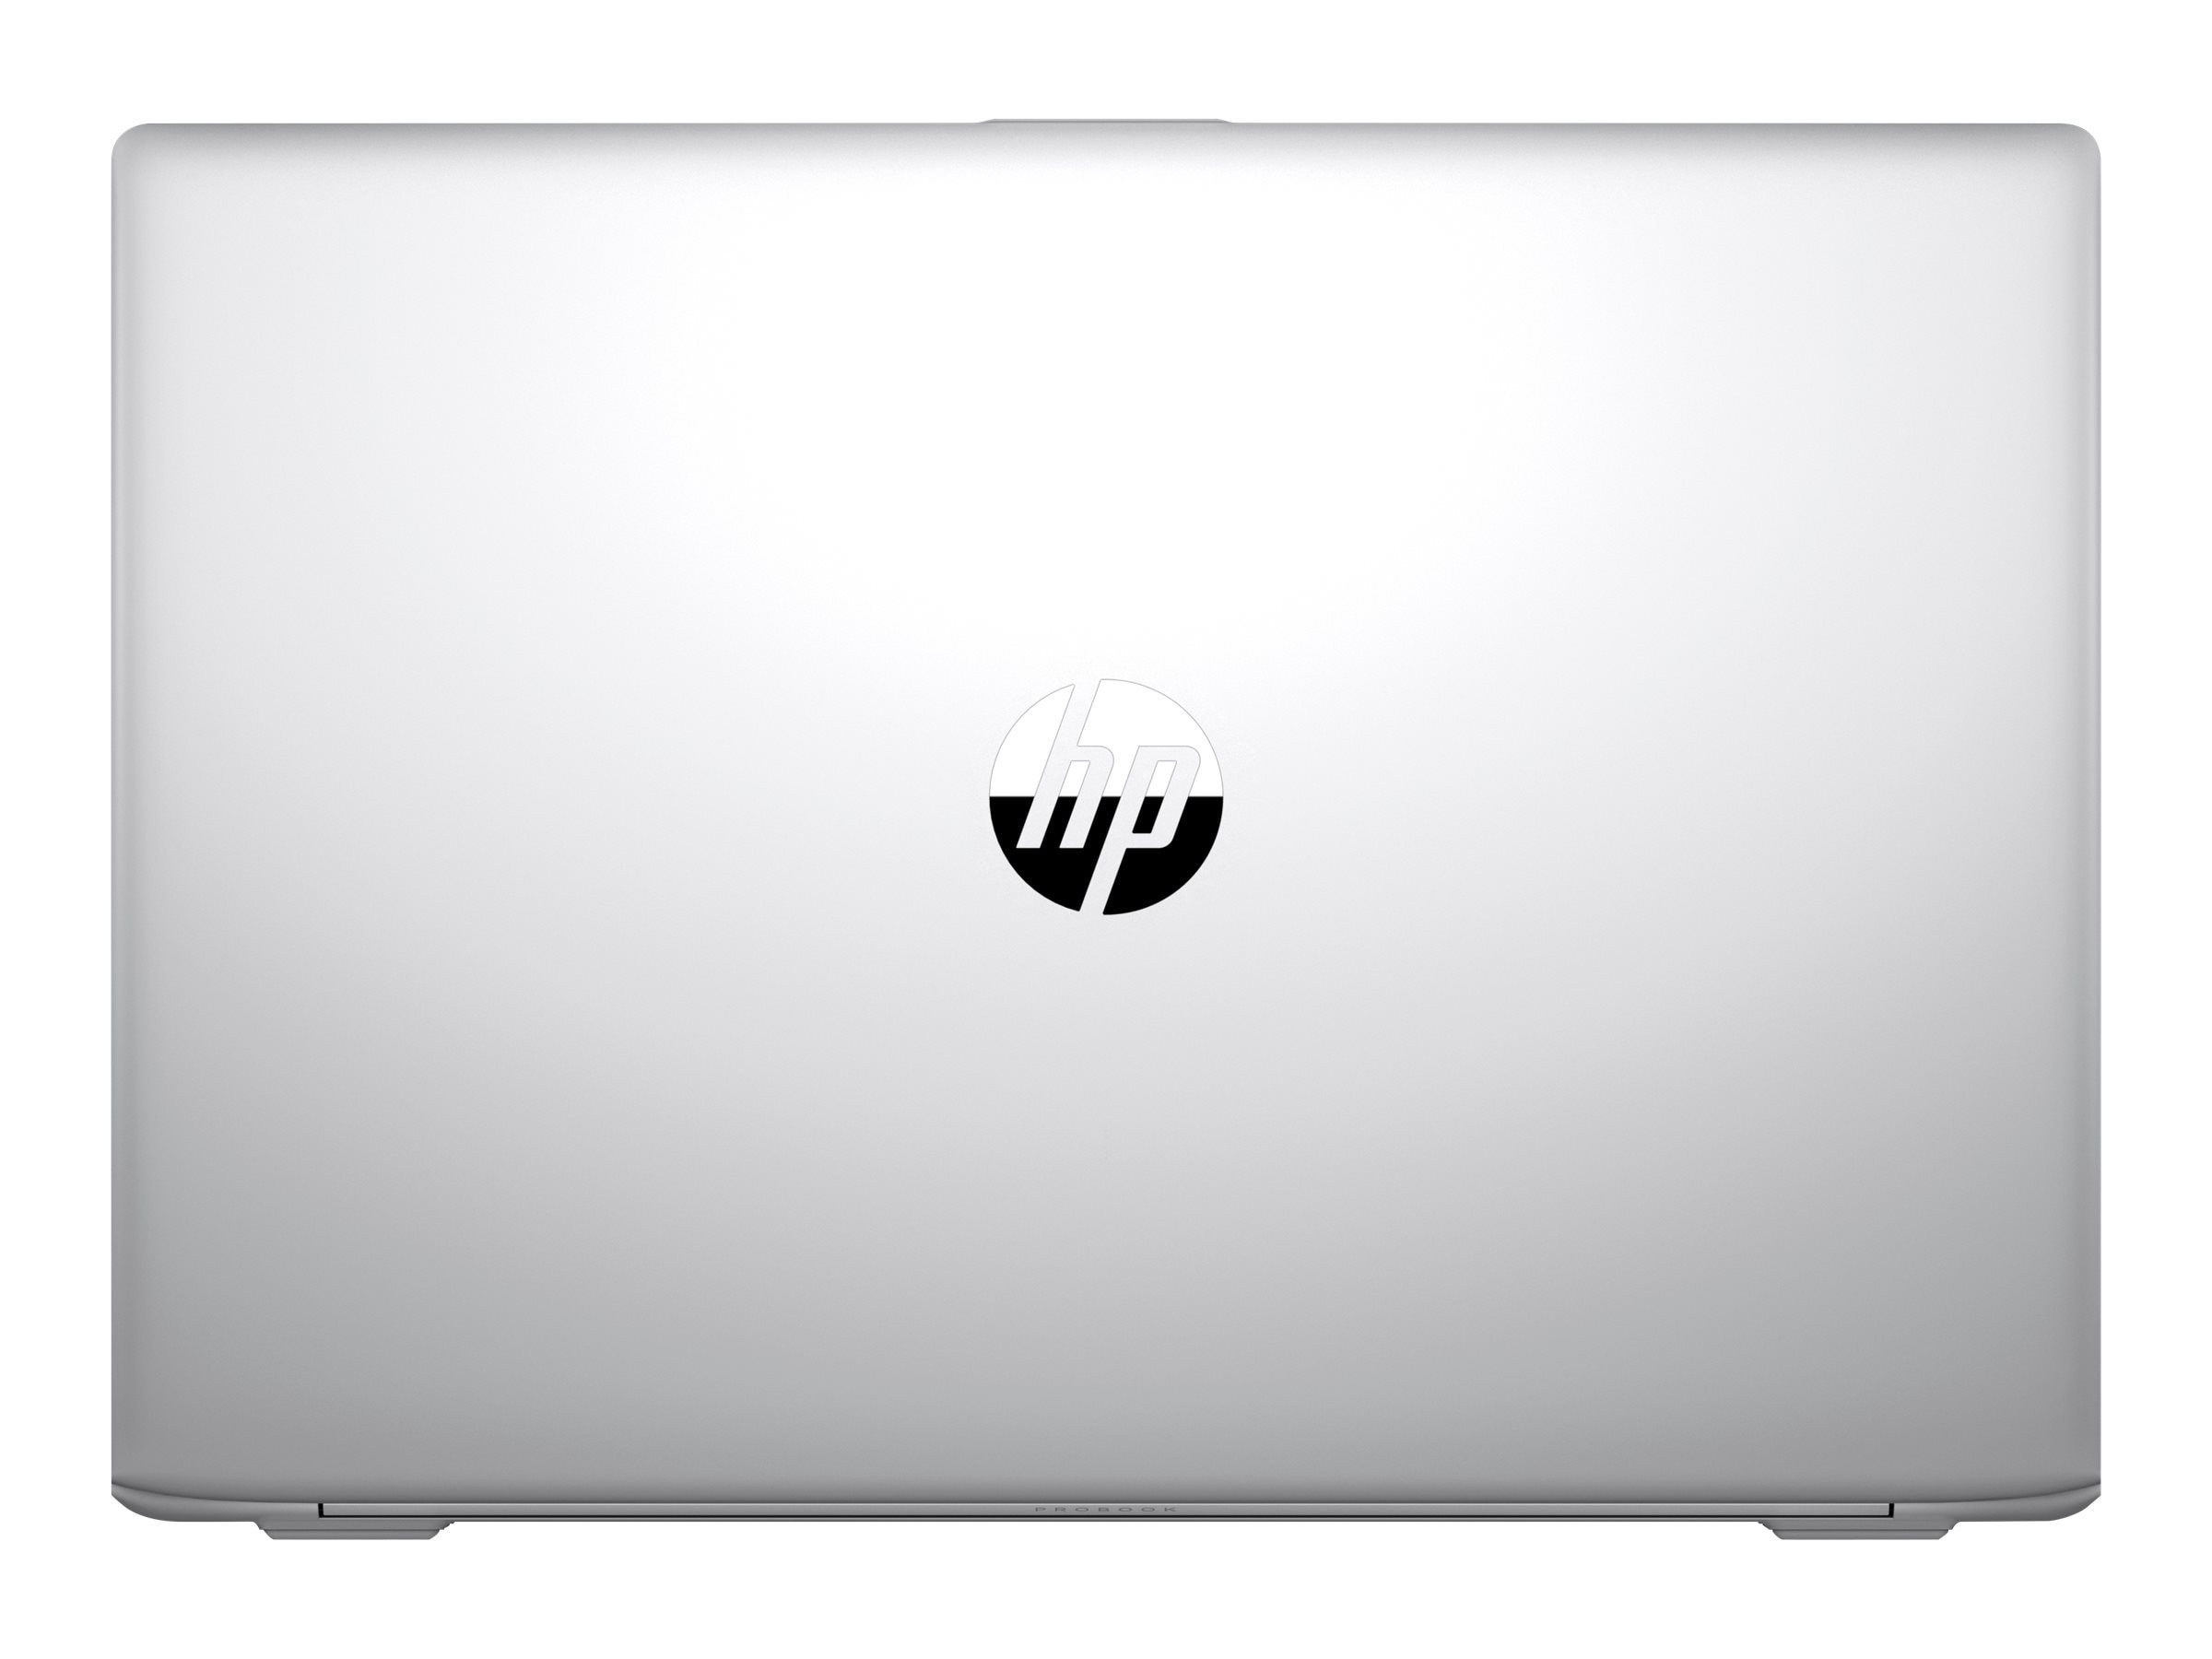 hp 620 drivers win 10